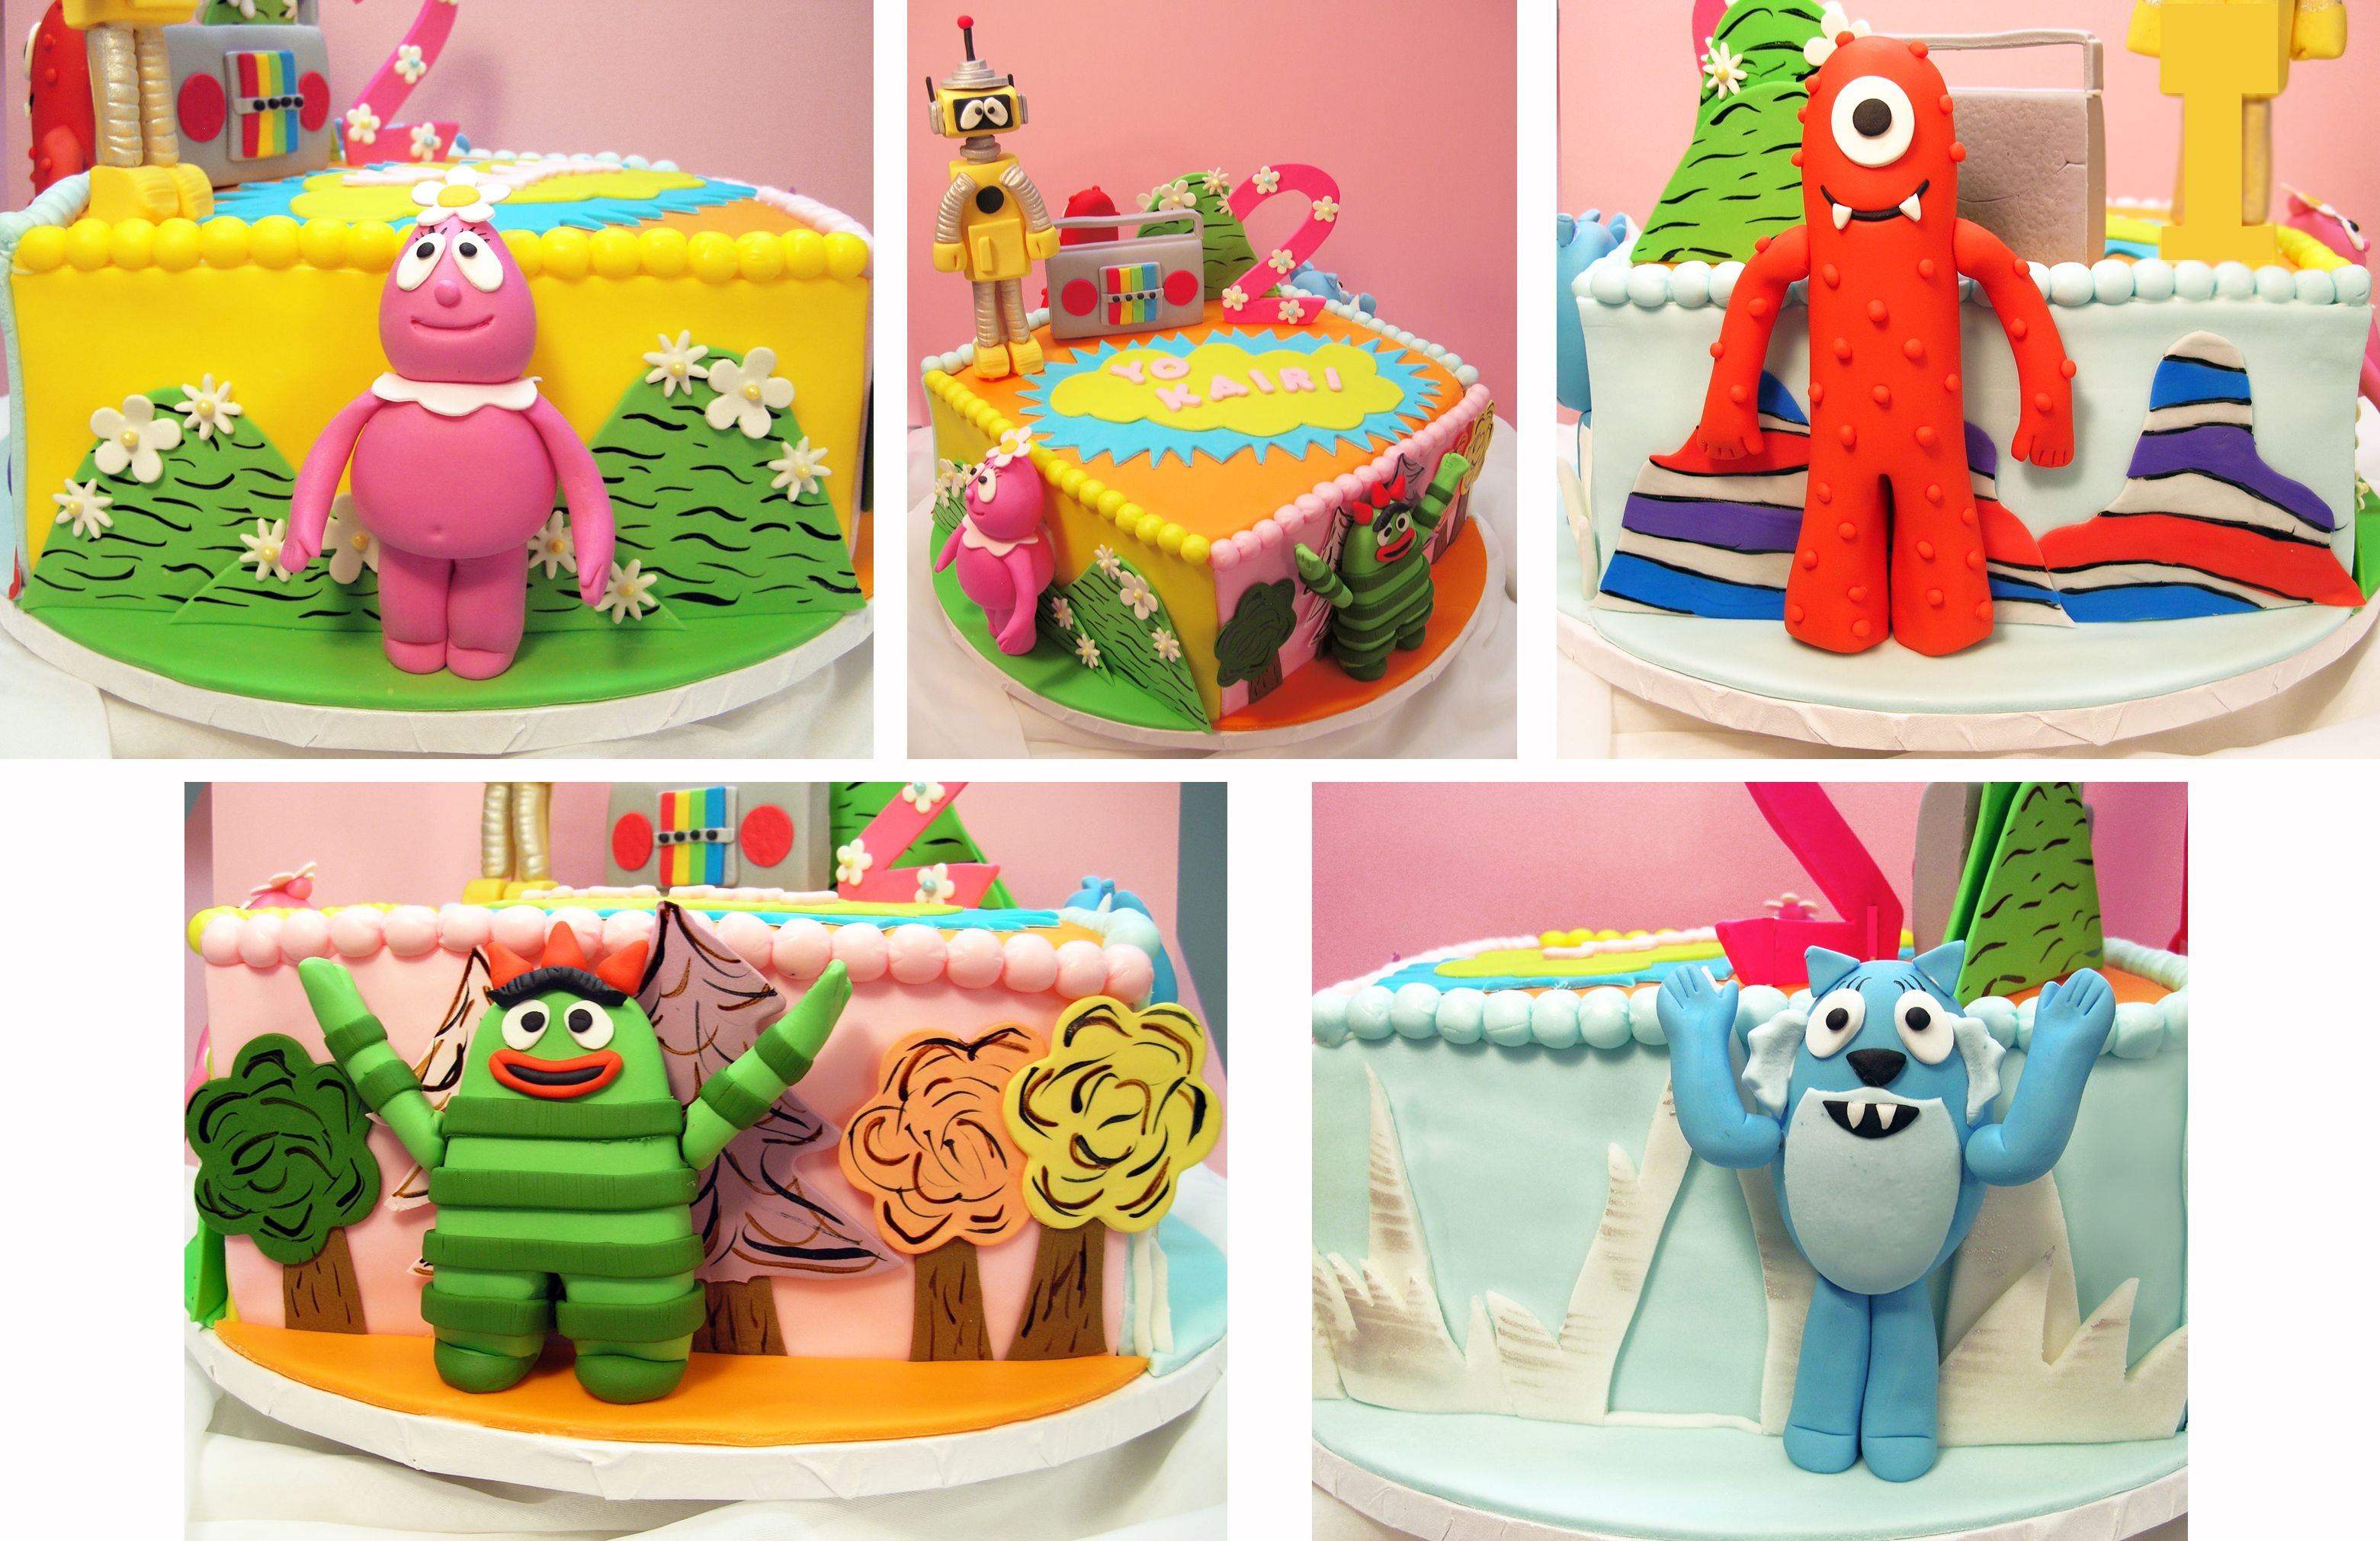 Miraculous Yo Gabba Gabba Birthday Cake With Each Side A Different Land Funny Birthday Cards Online Inifofree Goldxyz